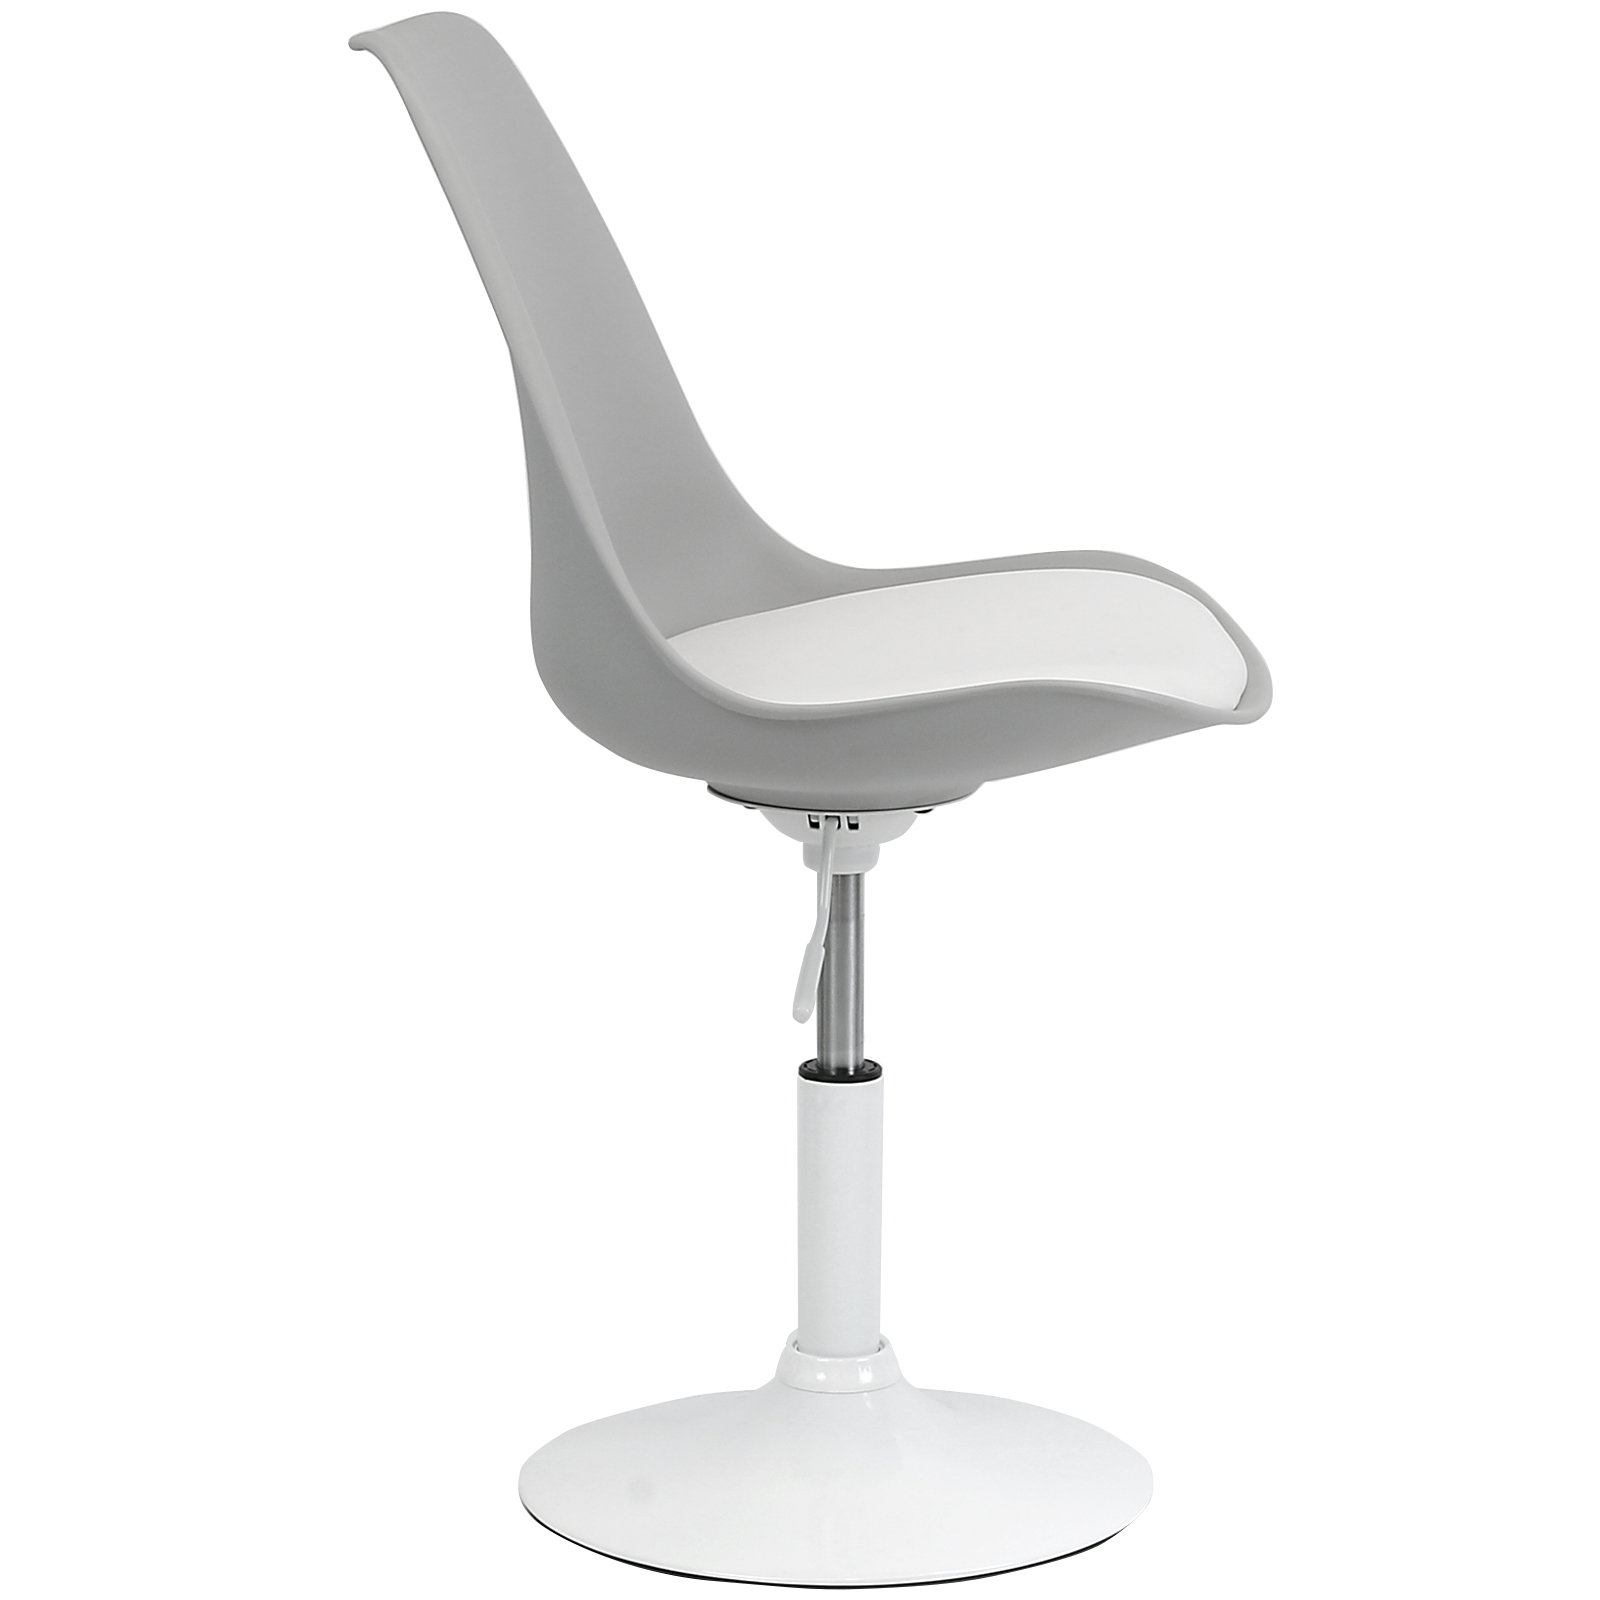 swivel office chair base revolving for back pain hartleys white and grey seat tulip desk reception